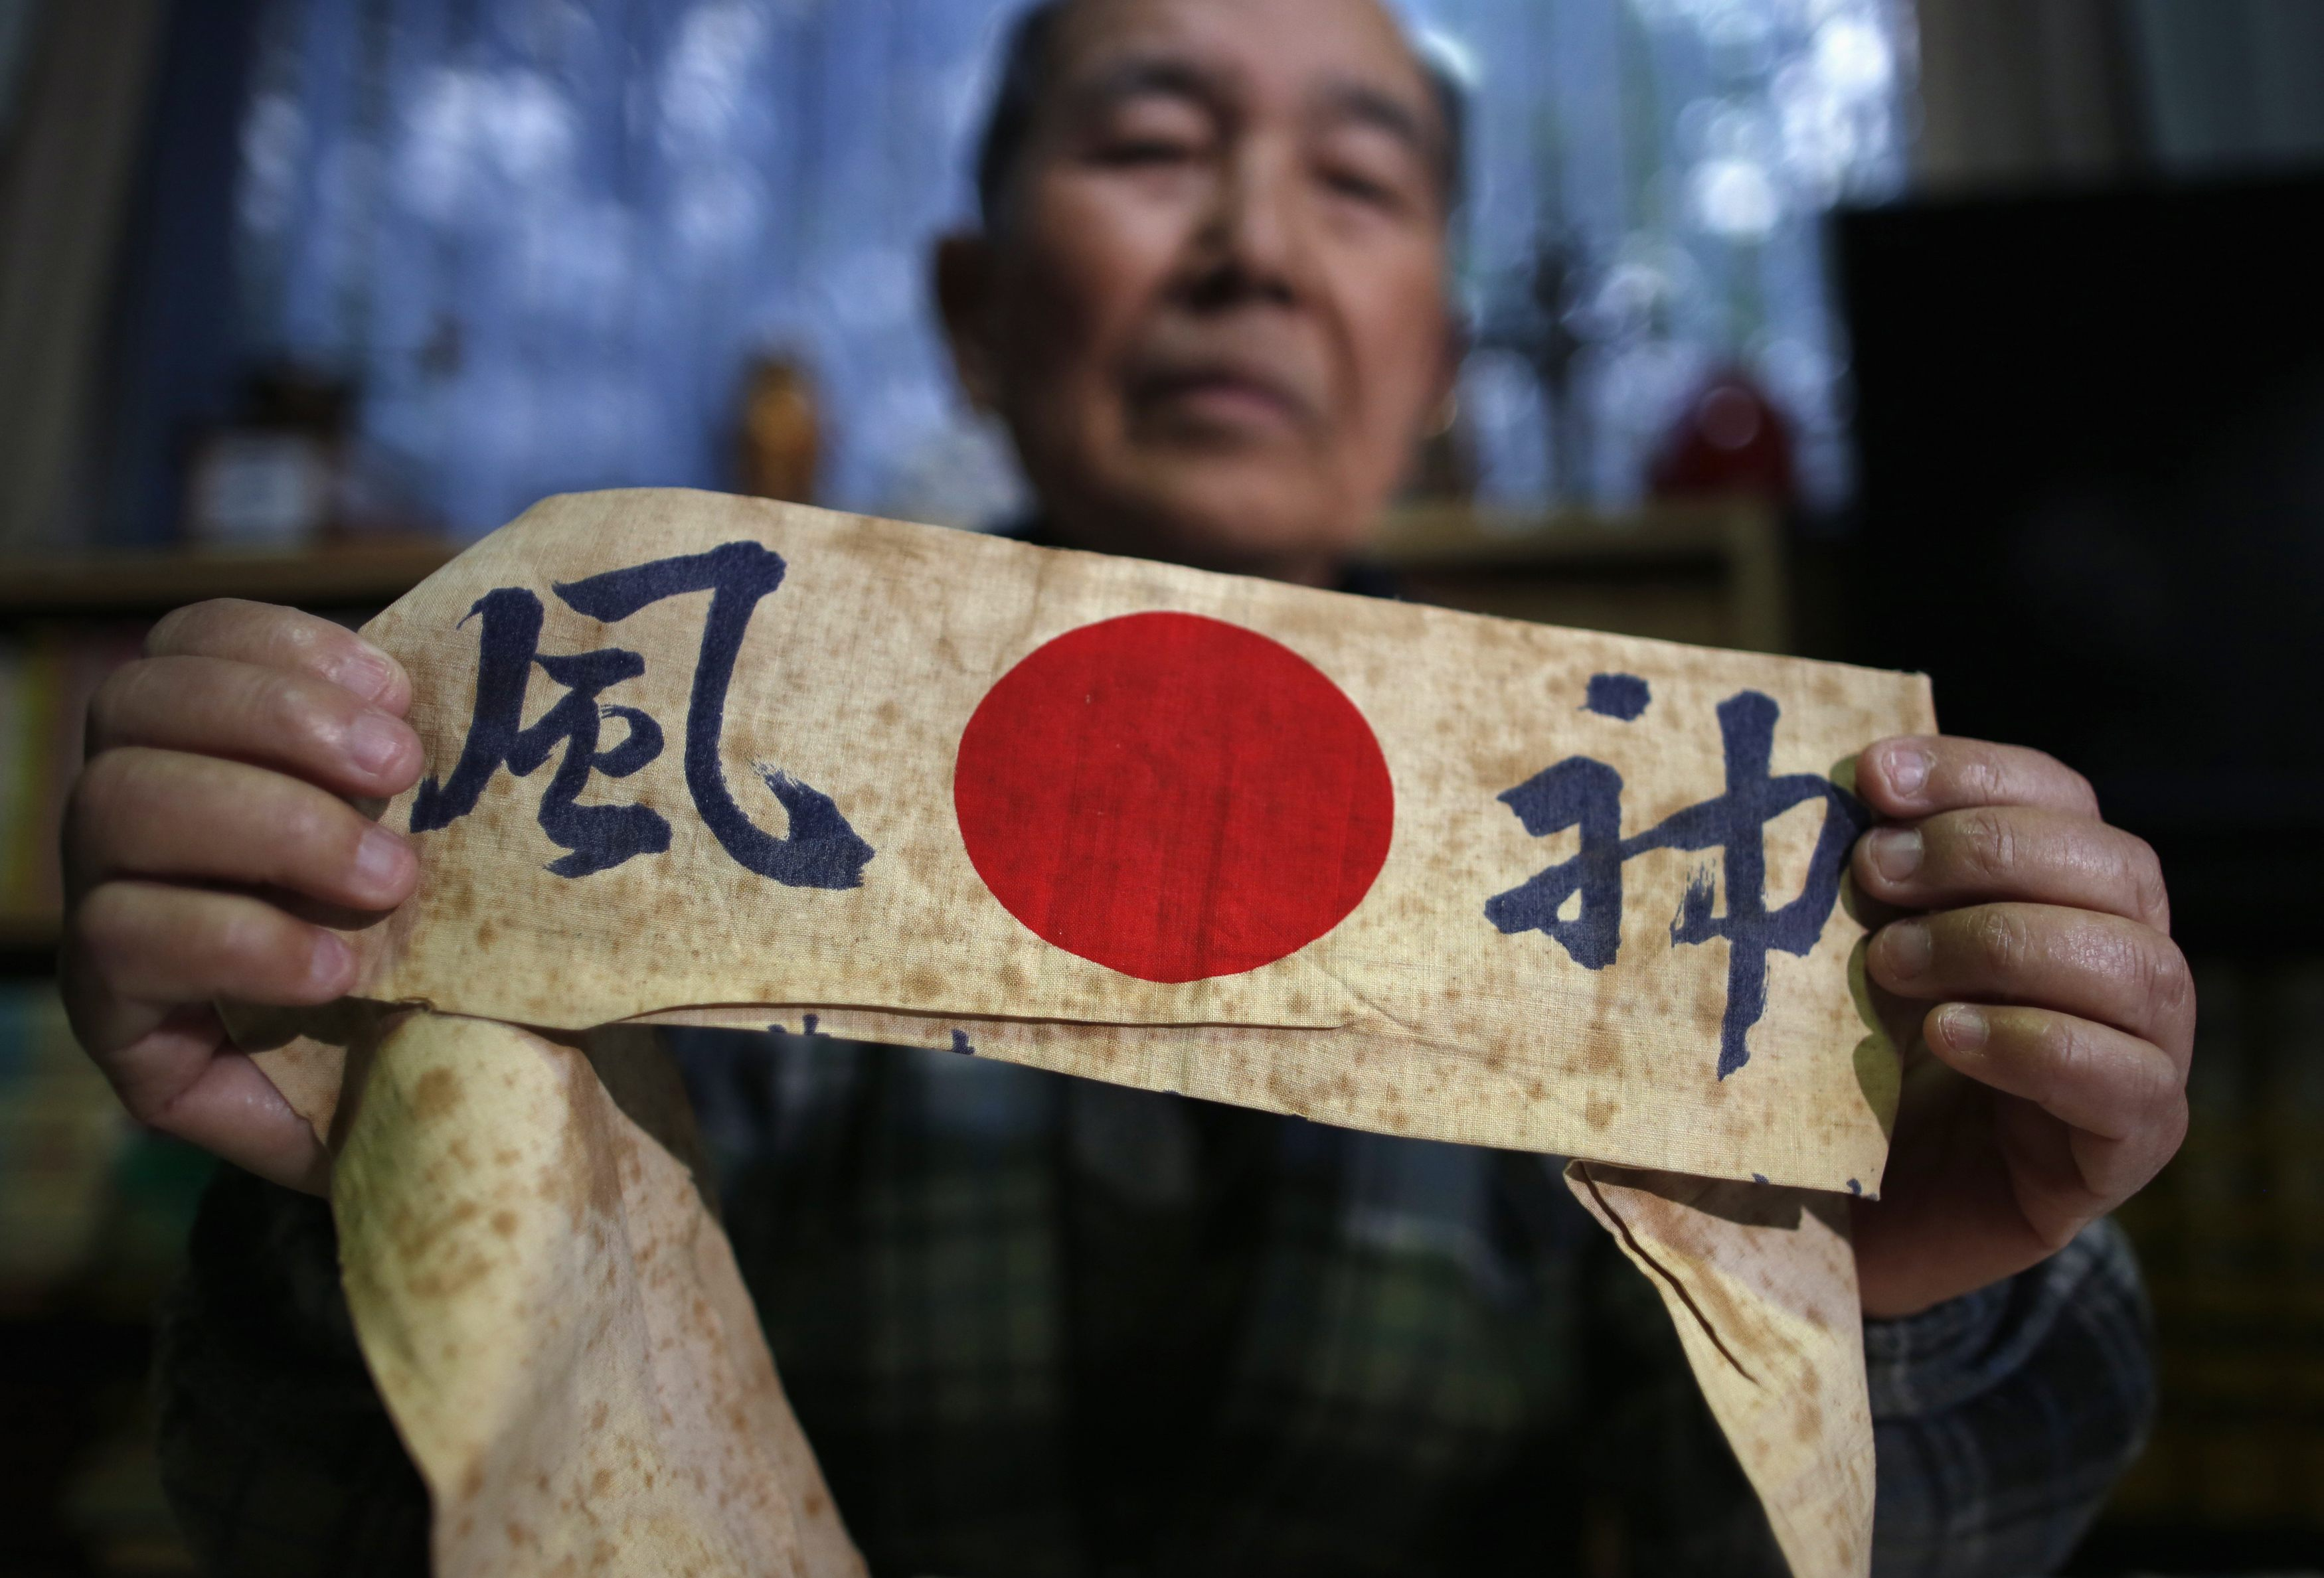 Author Katsumoto Saotome, 82, a survivor of the Great Tokyo Air Raid in 1945, holds a headband with the word 'kamikaze' on it during an interview at his home in Tokyo last Wednesday. | REUTERS